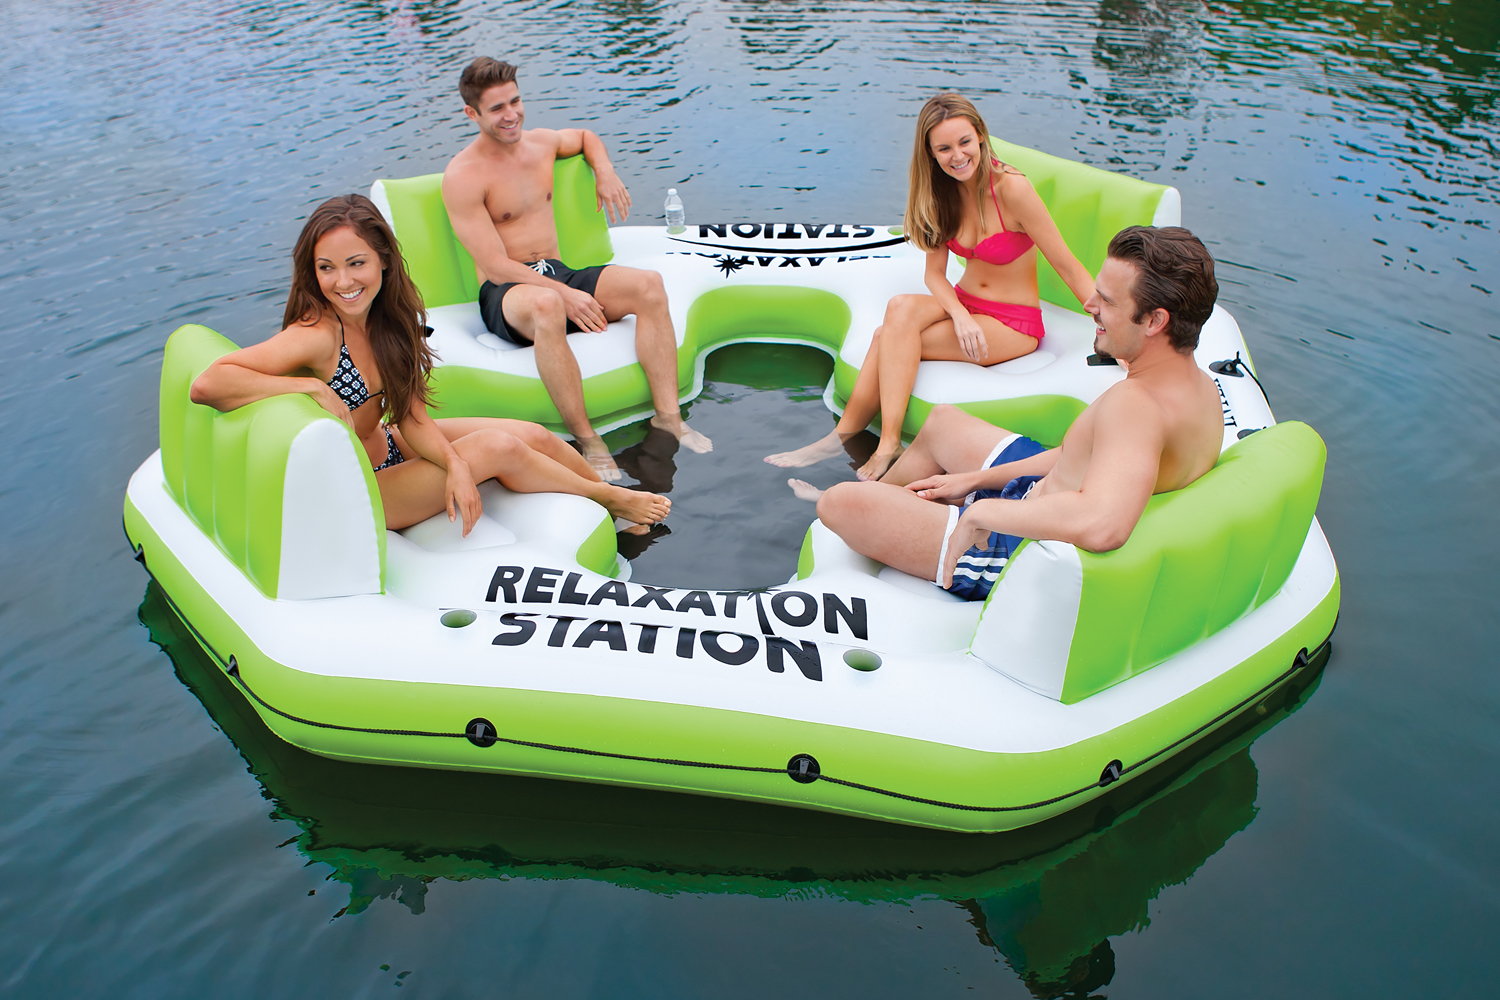 58296EP�Intex Relaxation Station 4-Person Water Lounge Raft - Green | 58296EP